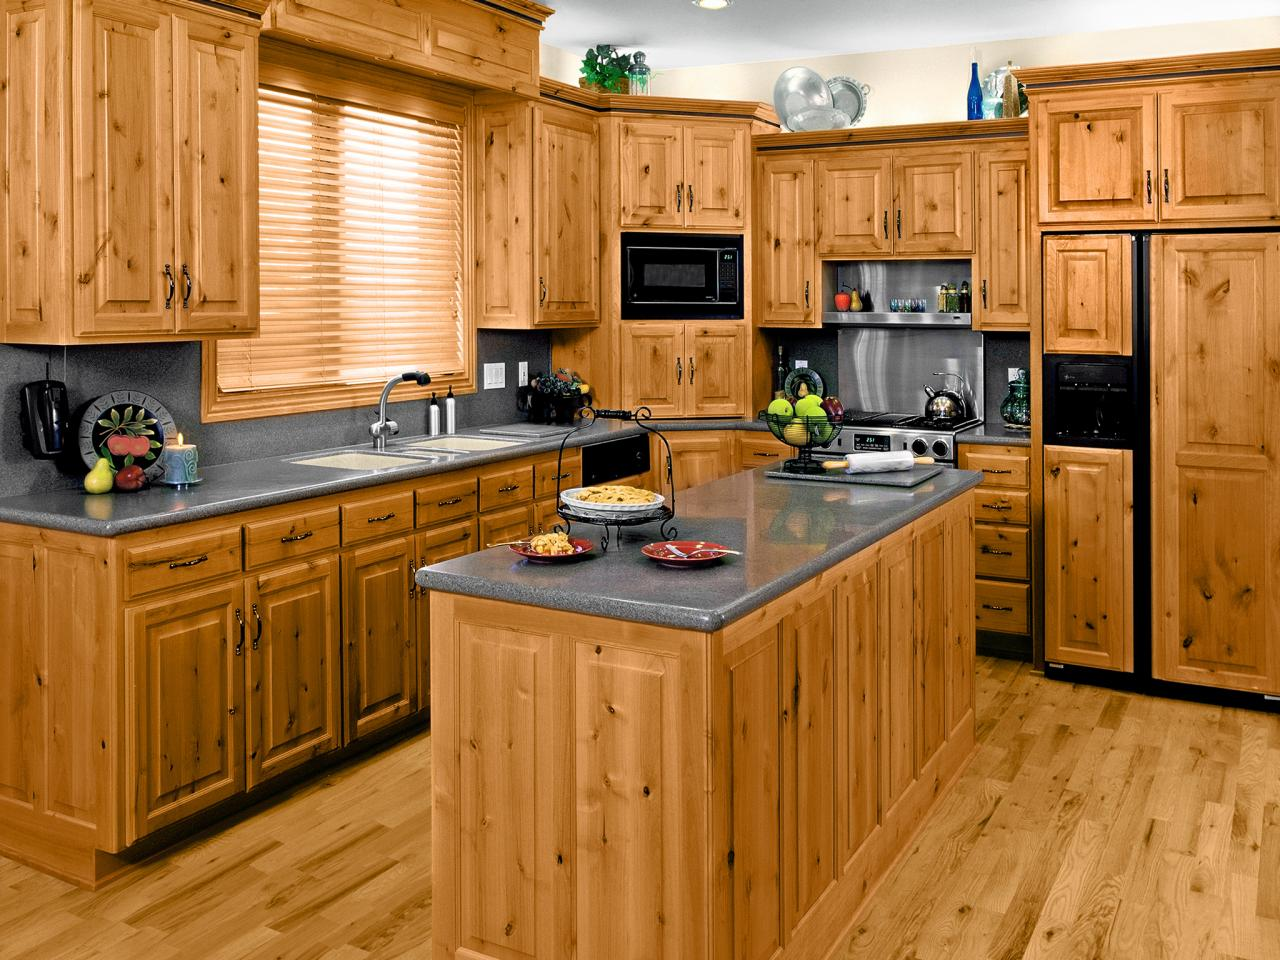 Kitchen Cabinets And Countertops Los Angeles - Pine kitchen cabinets